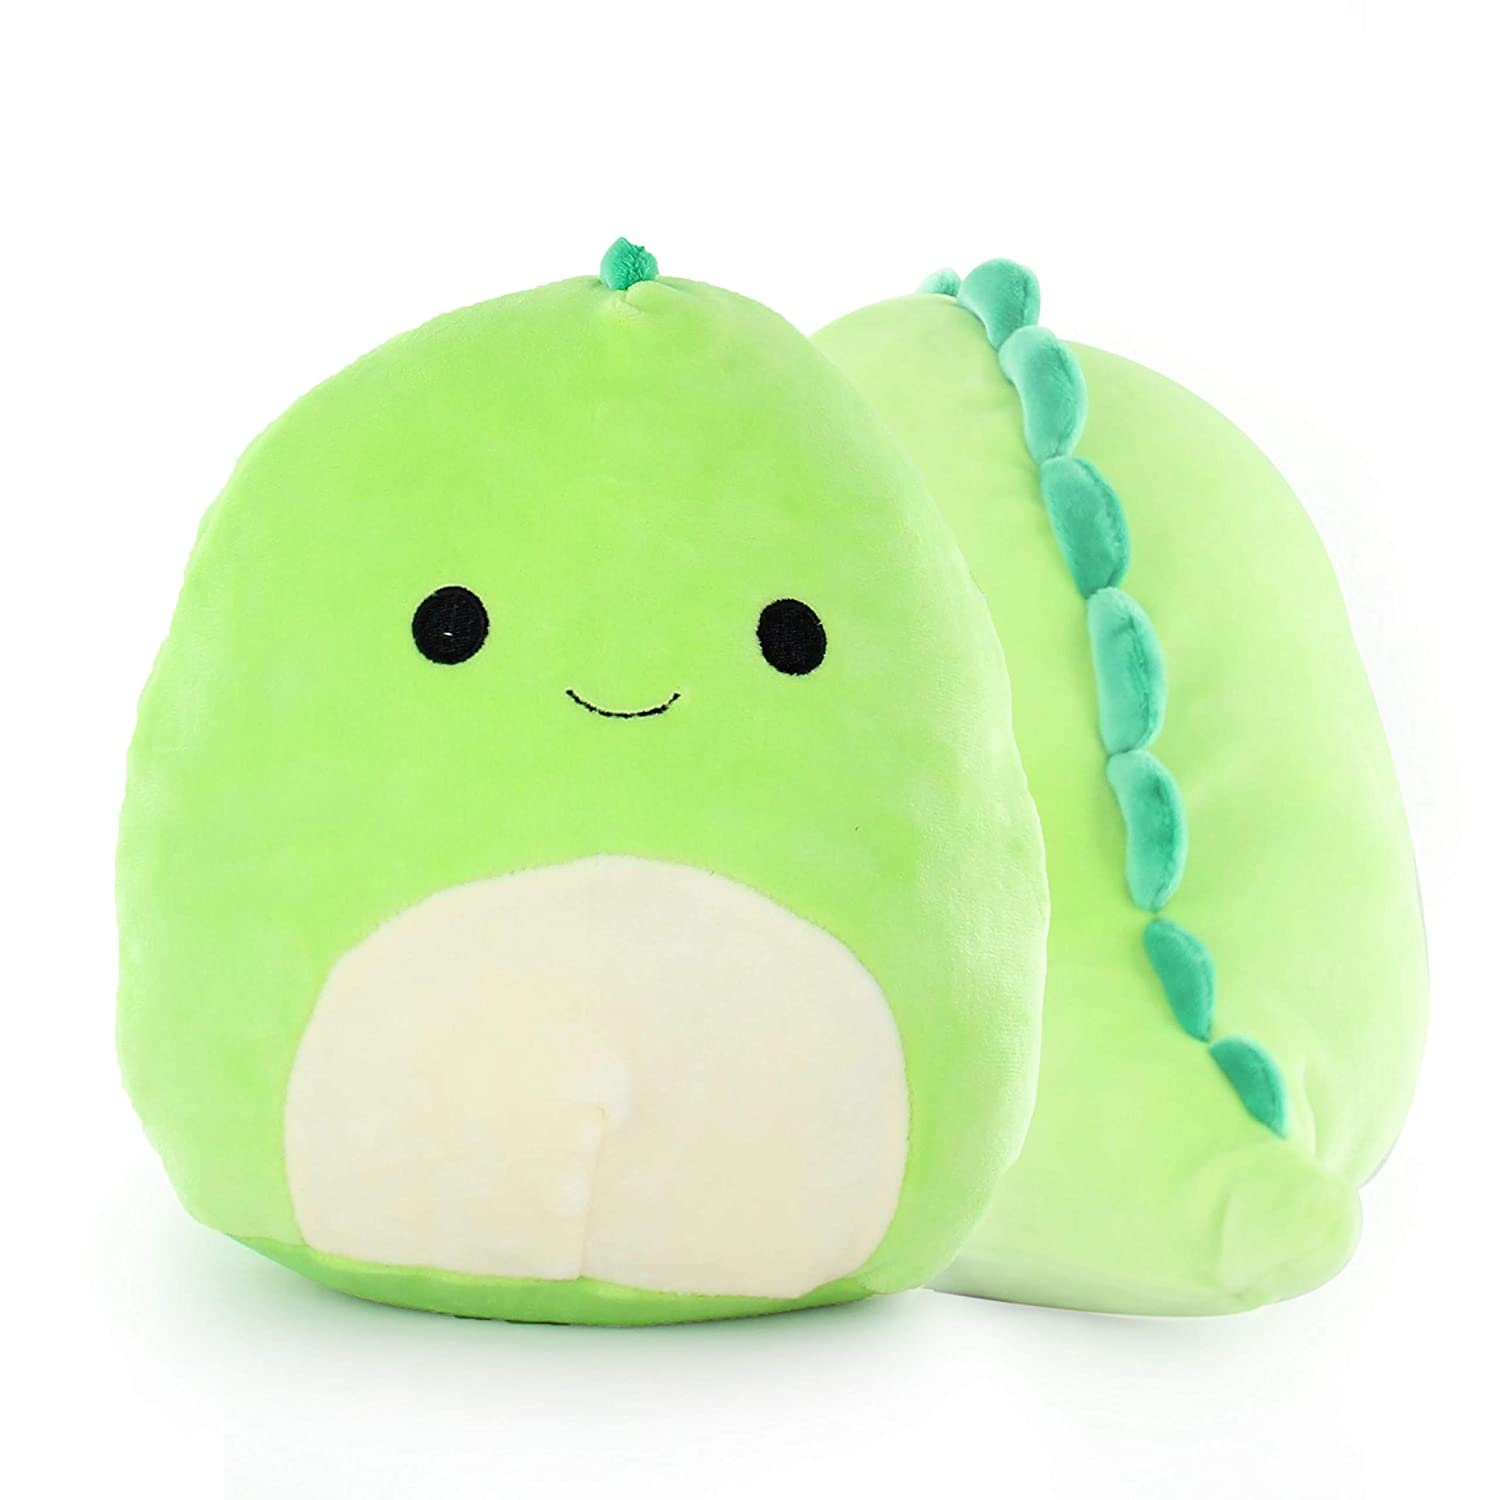 "QuStars Squishmallows 13"" Super Soft Plush Toy Animal Pillow Pal Buddy (Dino)"